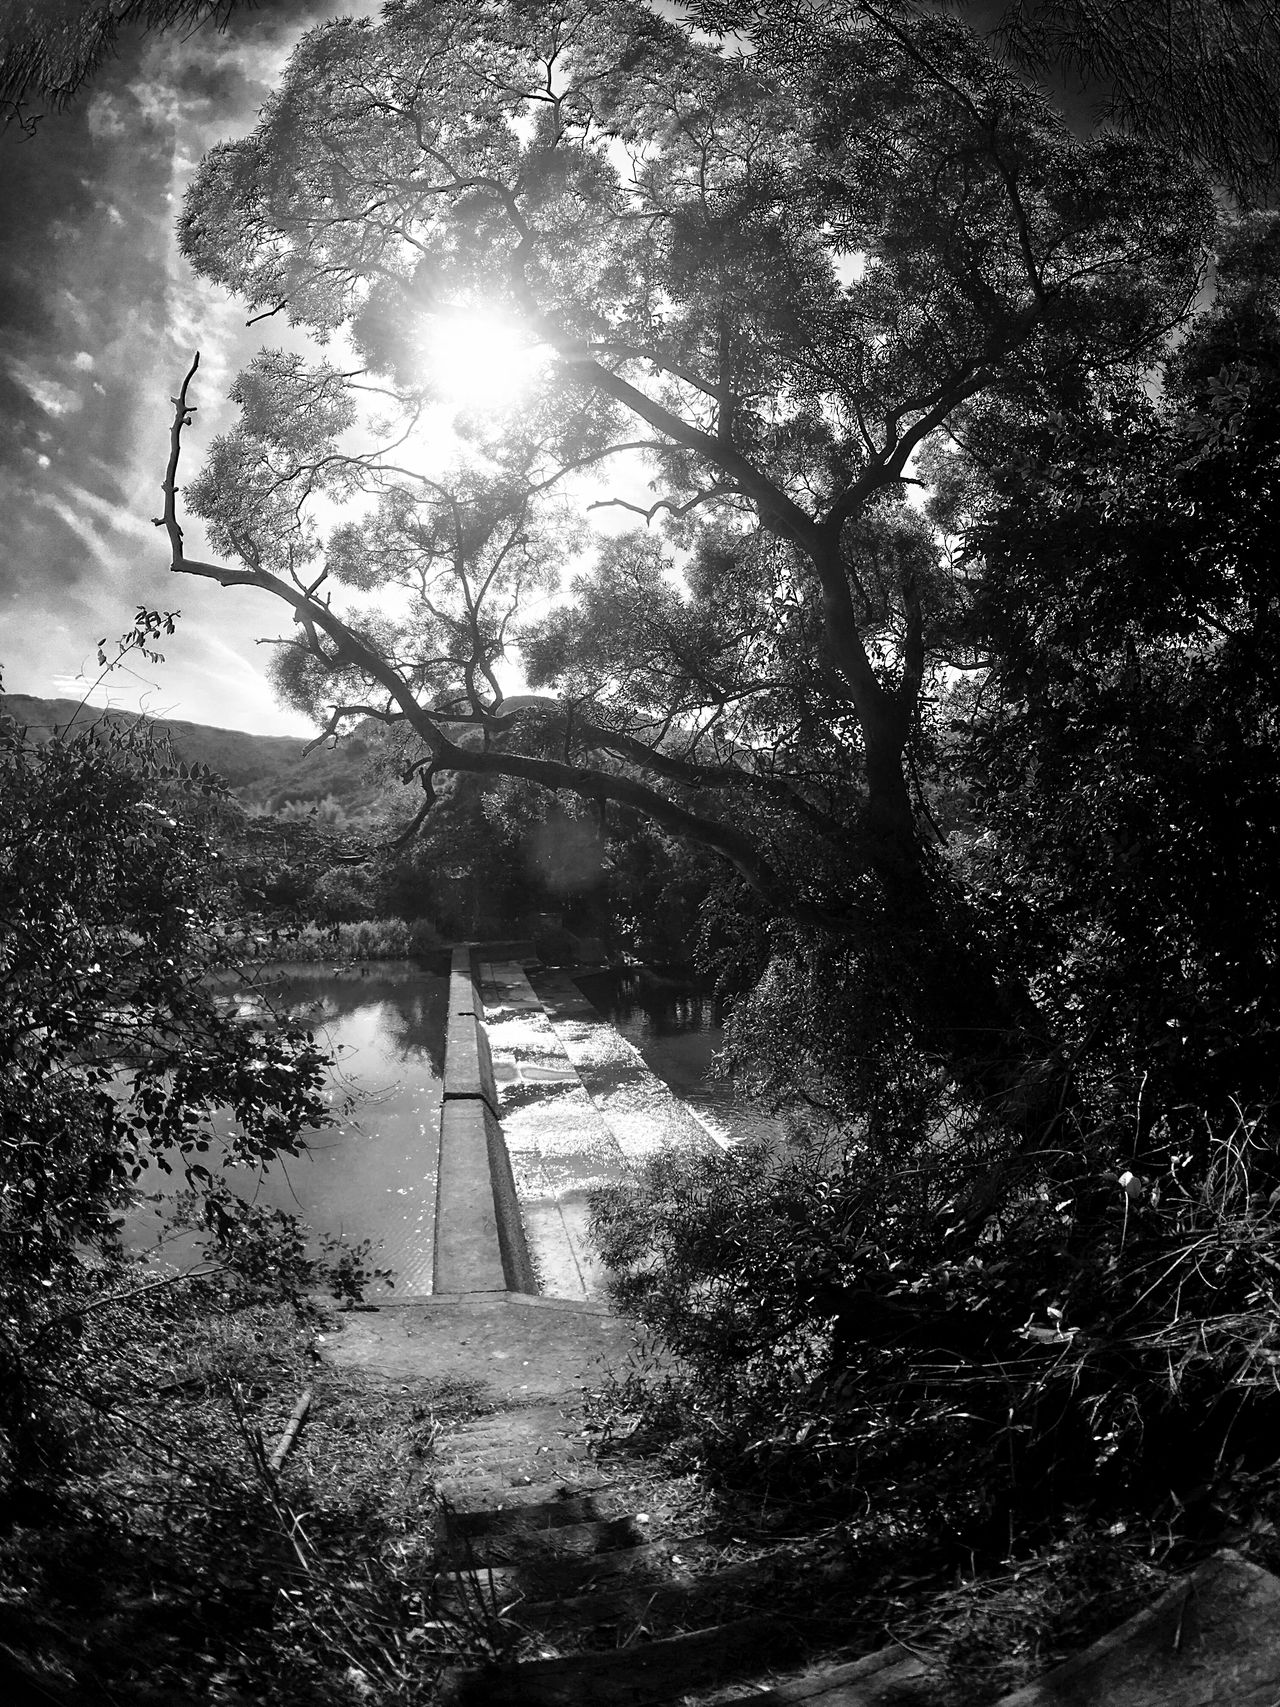 Tree Nature Tranquility Growth Outdoors Sunlight Sun Tranquil Scene Day No People Beauty In Nature Sky Branch Landscape Black & White Black And White Sun Light Through Trees Light And Shadow IPhoneography Moment Lens Superfish Landscapes Stream - Flowing Water Sunlight And Shadow Non-urban Scene